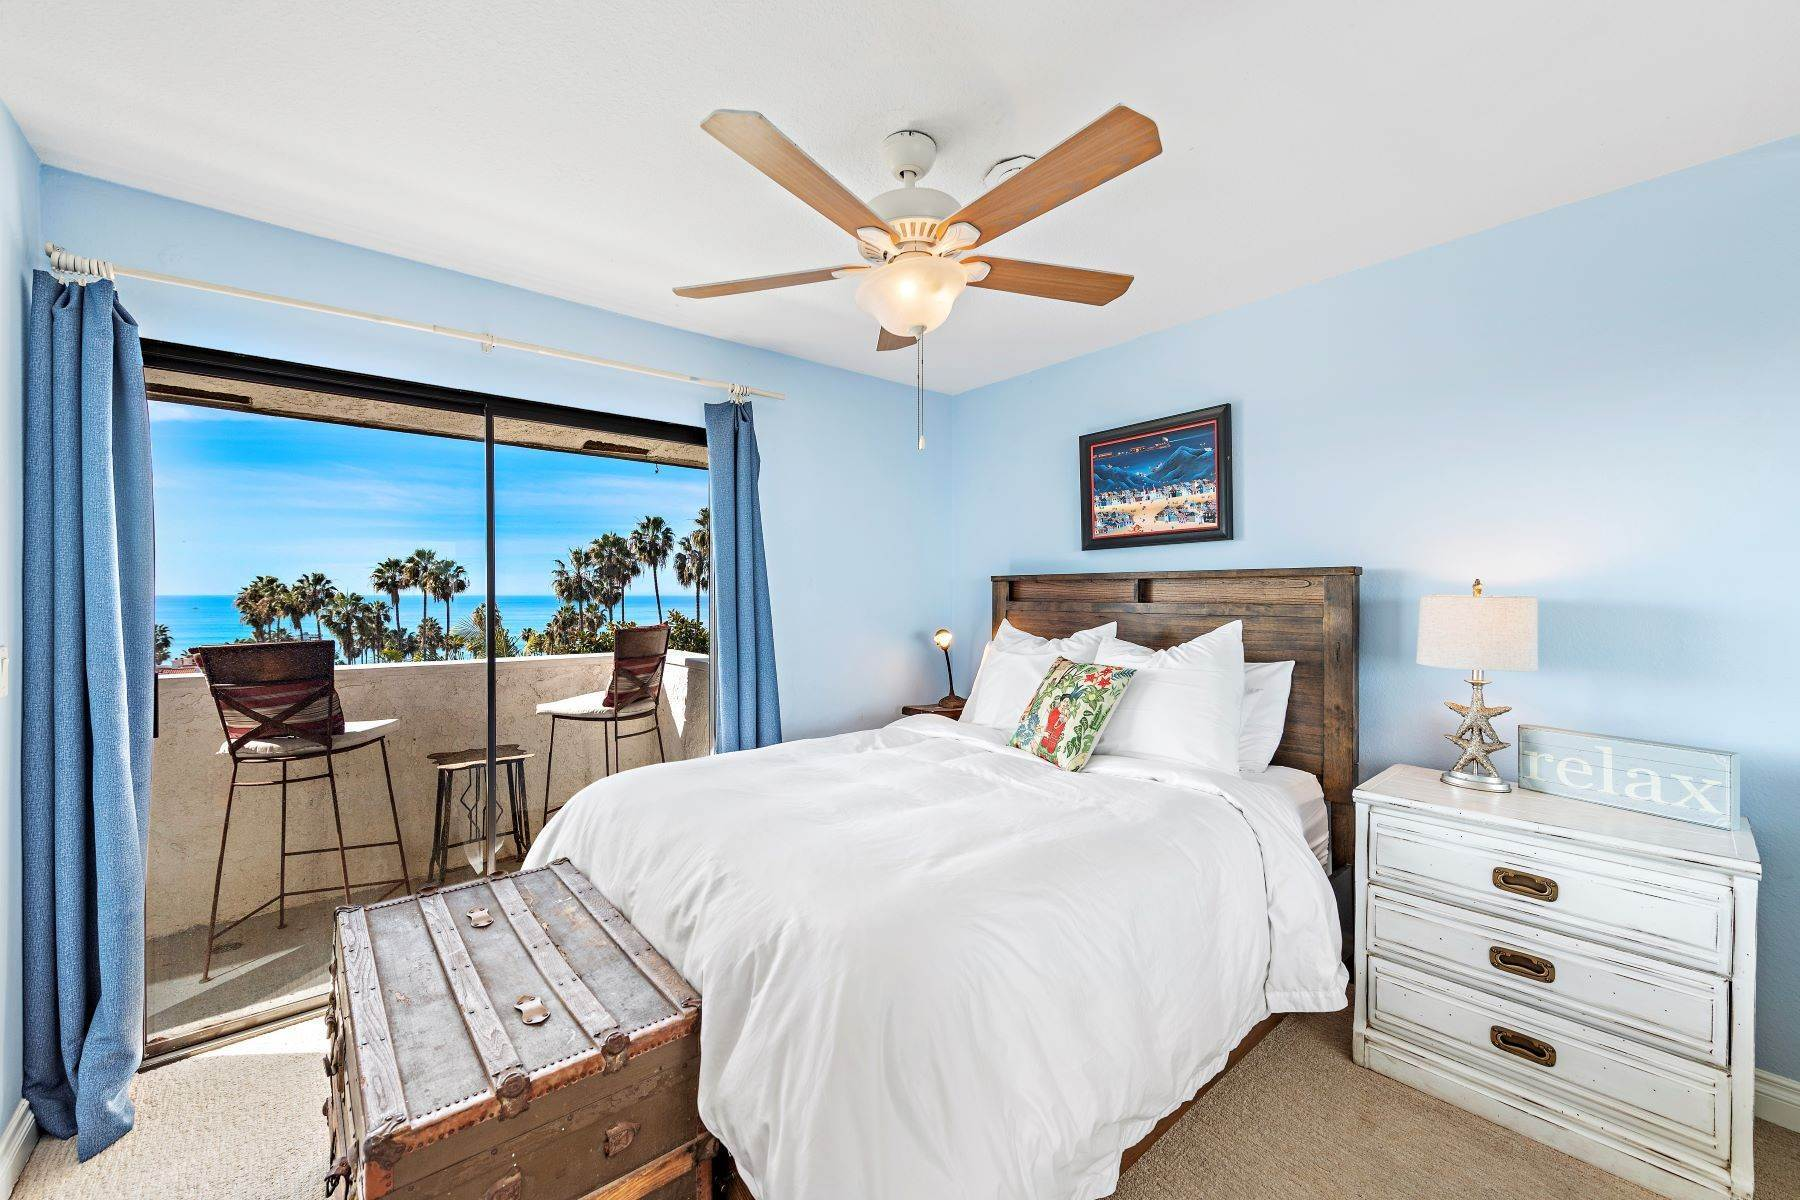 20. Condominiums for Sale at 321 Acebo Lane Unit #C, San Clemente, CA 92672 321 Acebo Lane, Unit #C San Clemente, California 92672 United States